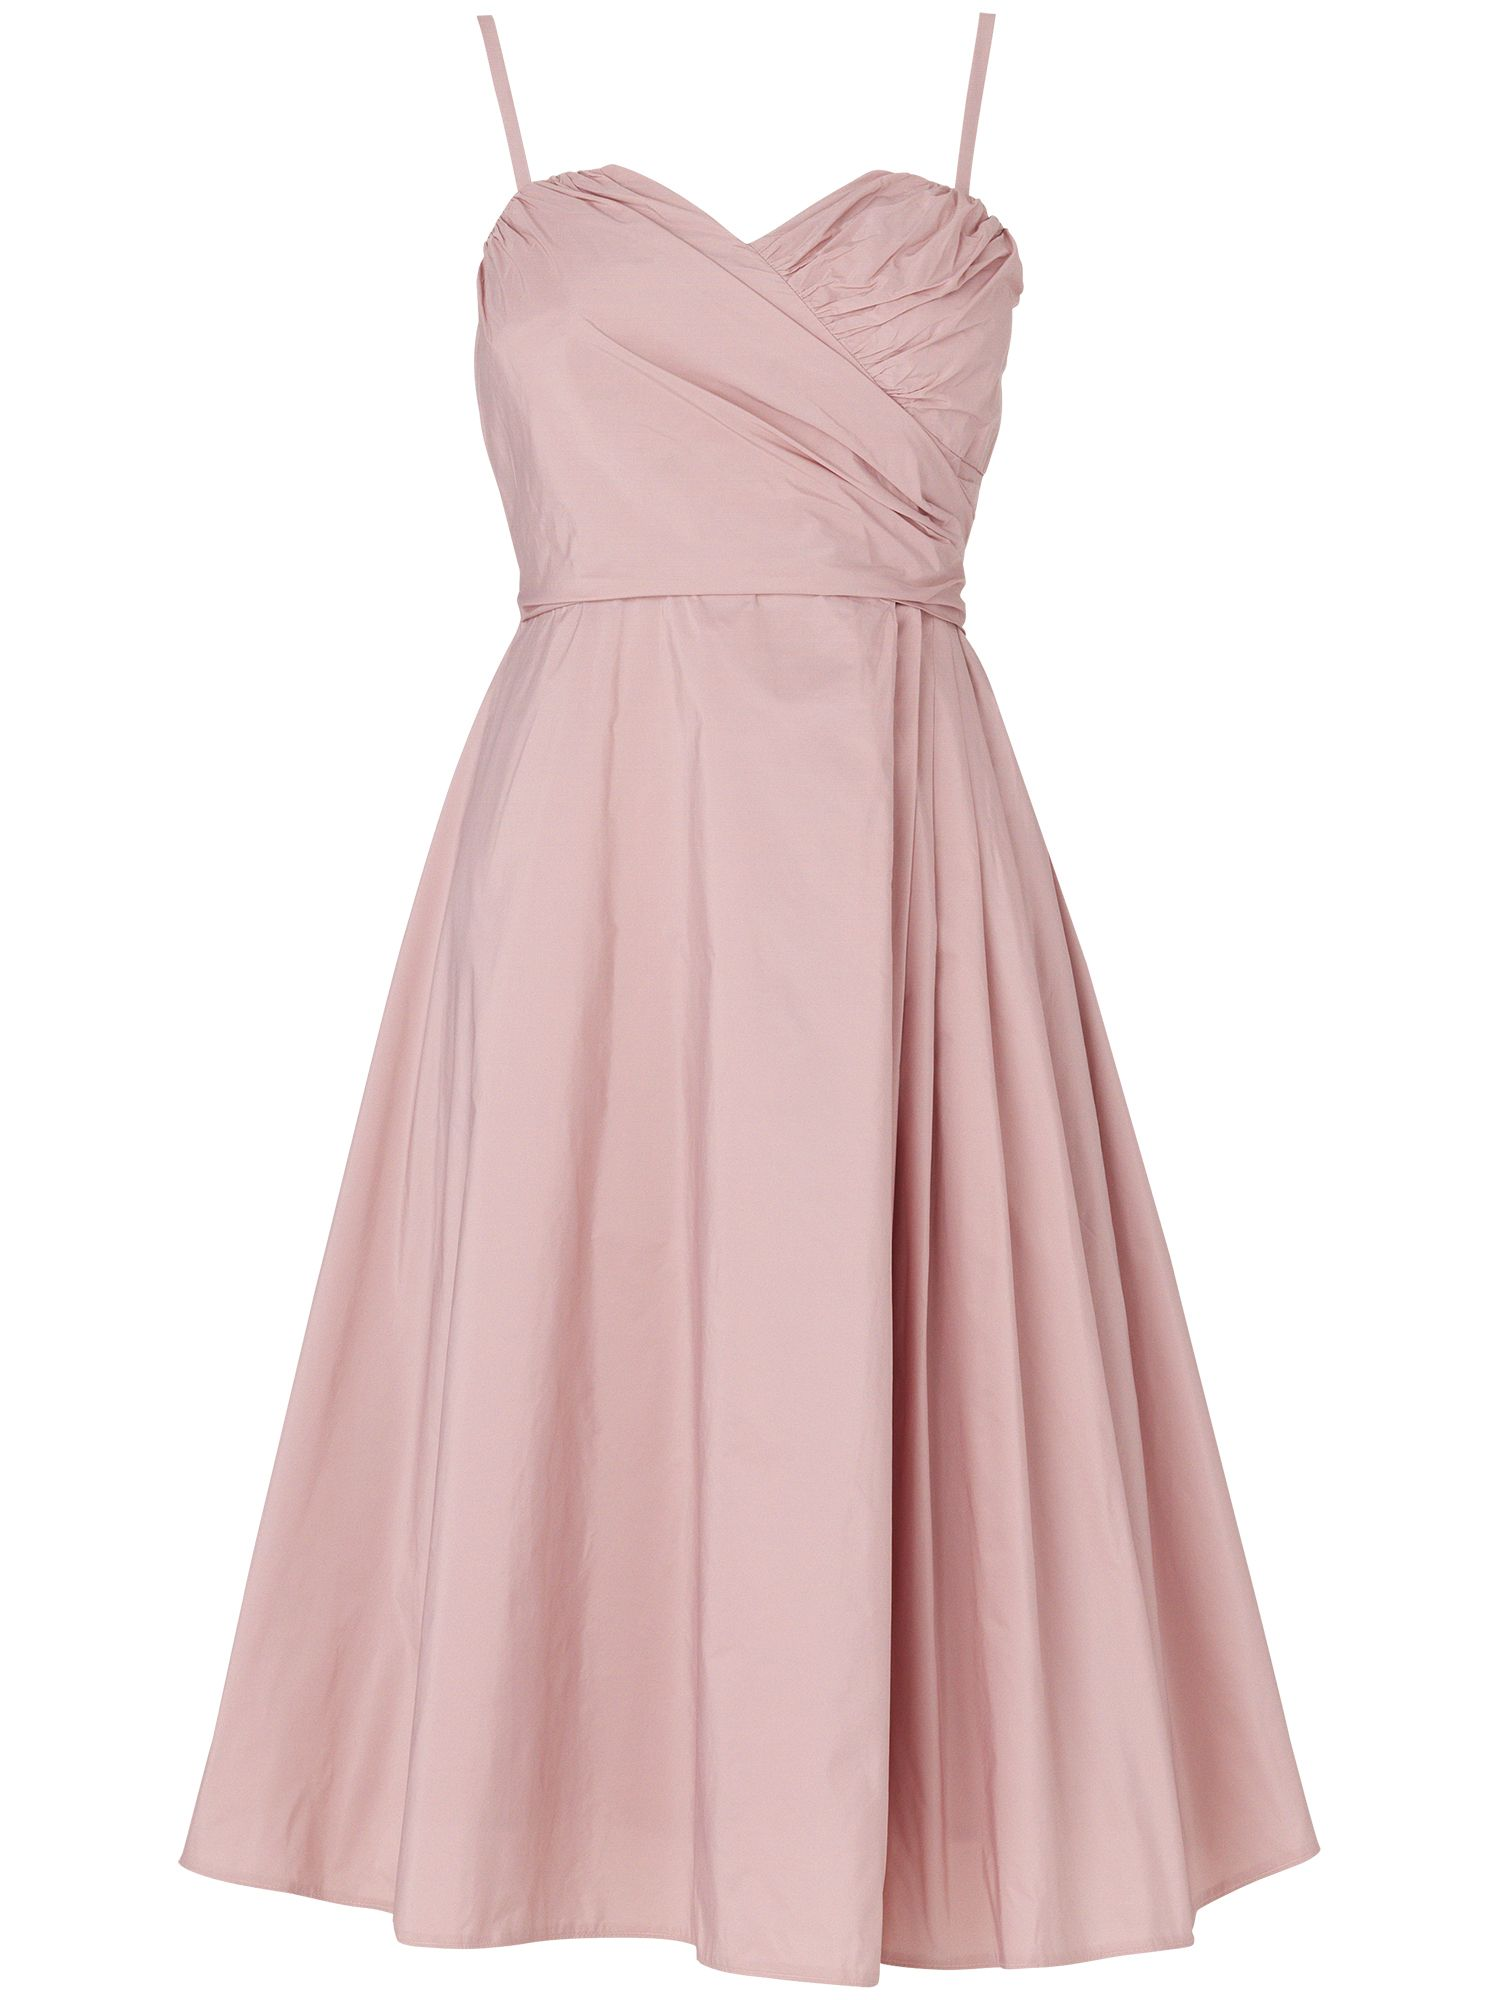 Concerto taffeta dress